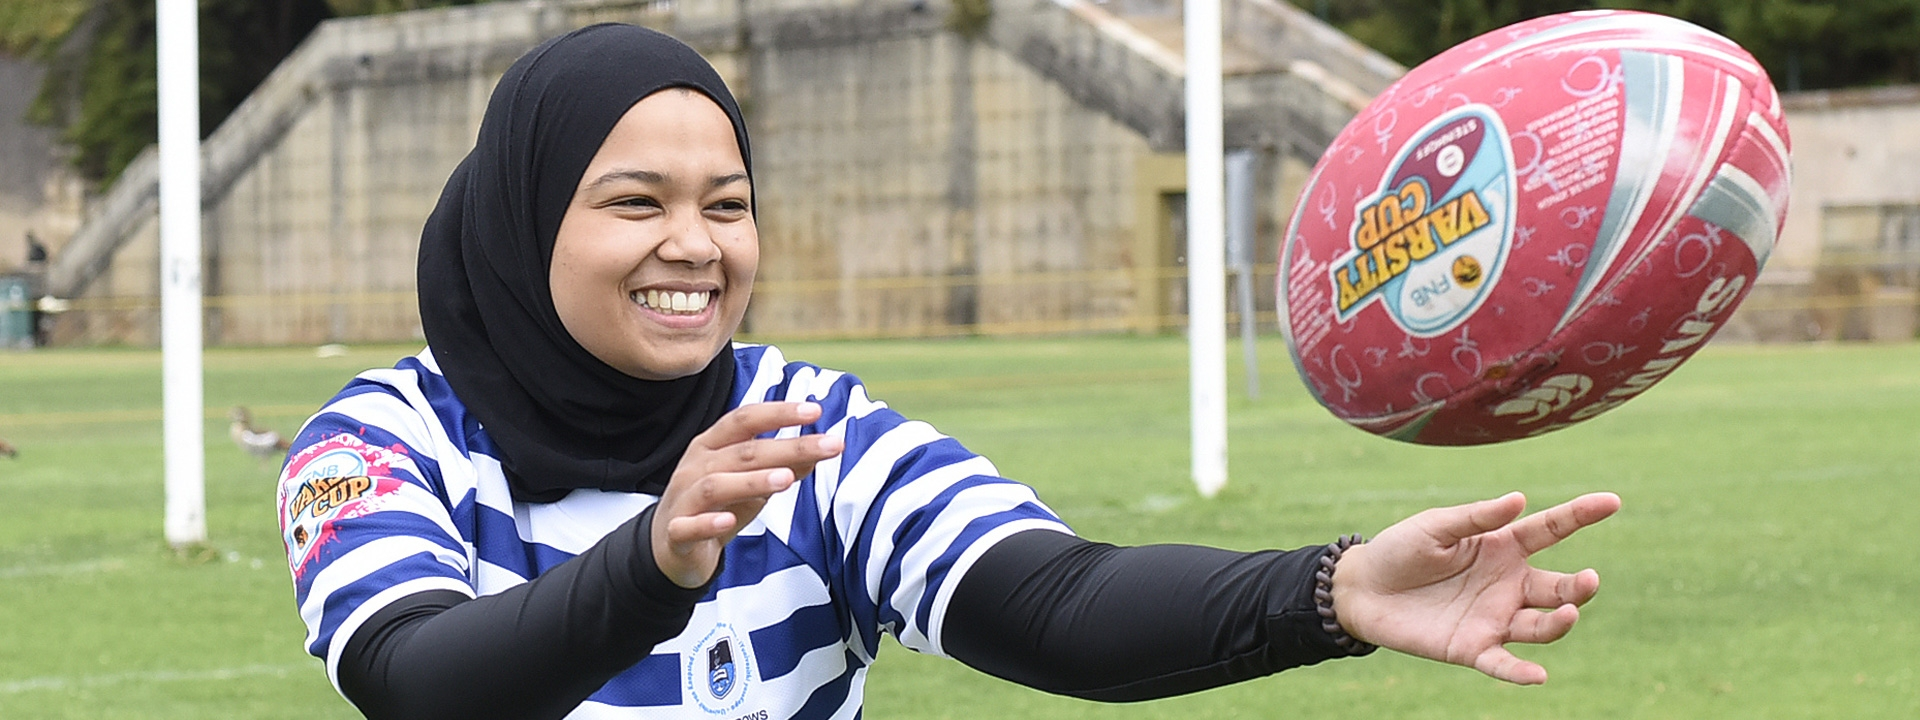 Rugby in hijab